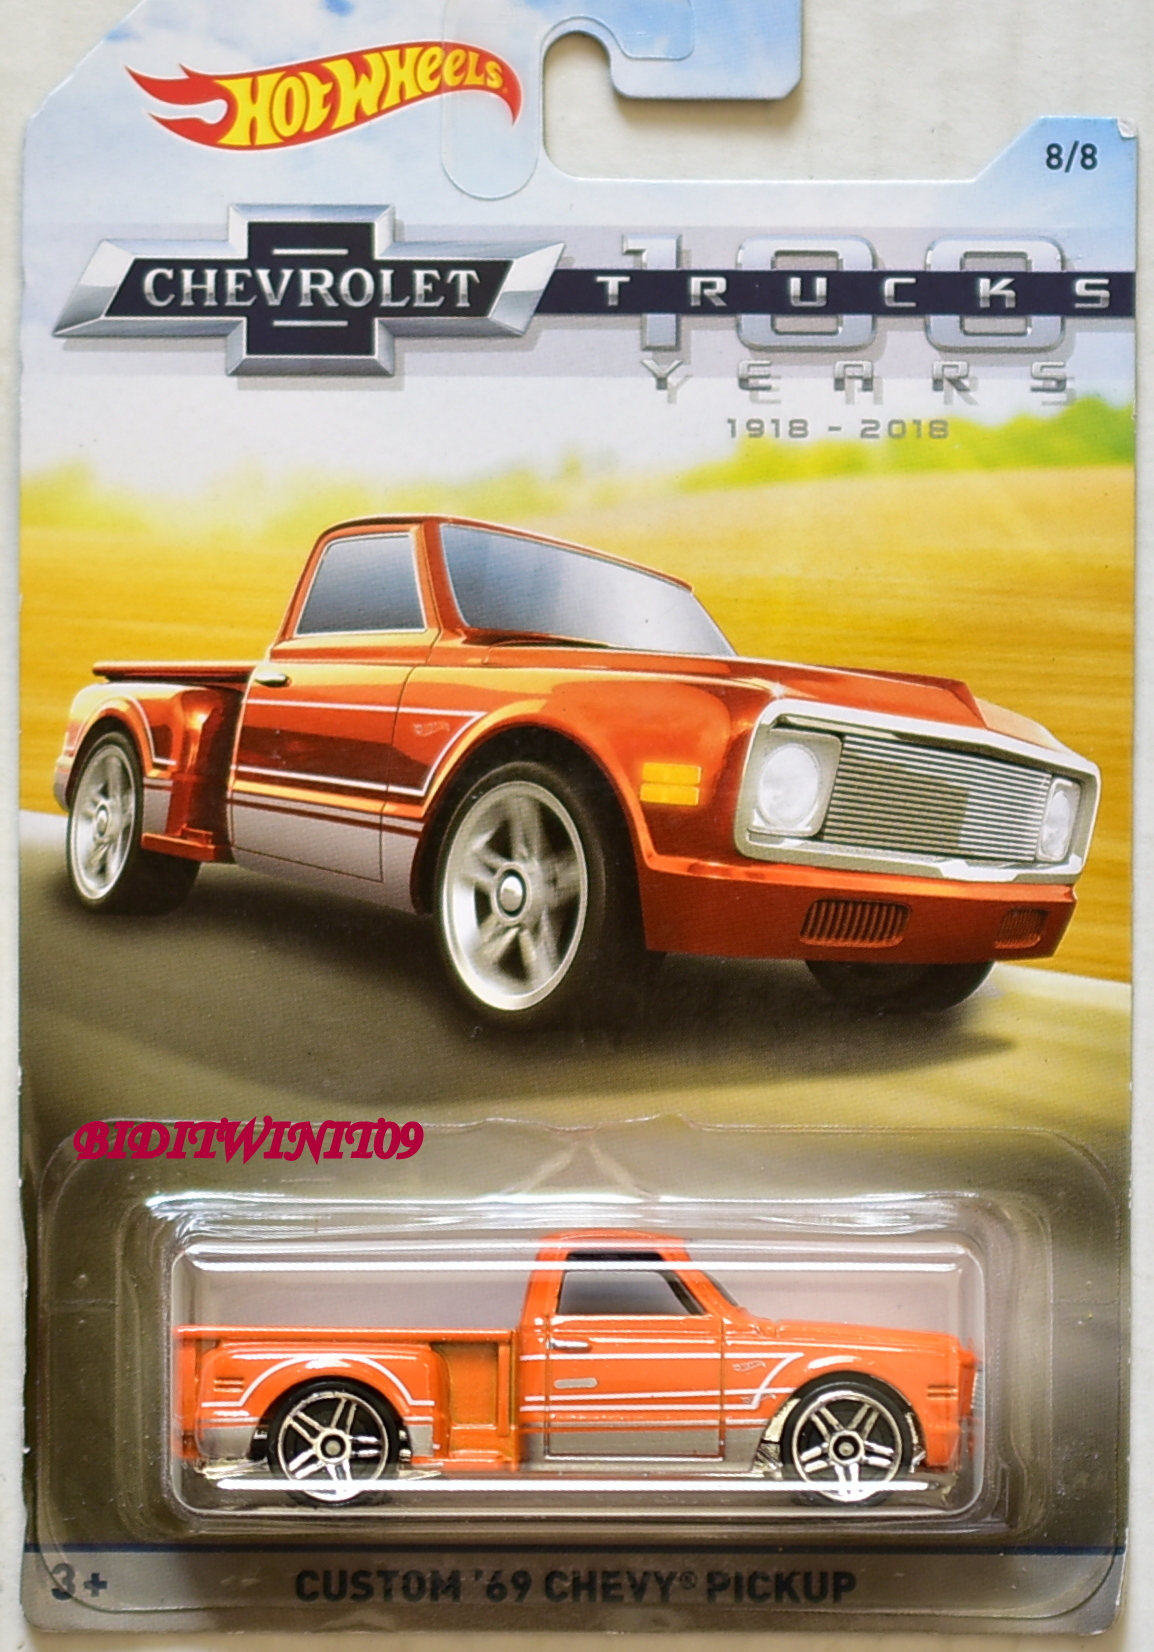 HOT WHEELS 2018 CHEVROLET TRUCKS CUSTOM '62 CHEVY PICKUP PAINT VARIATION E+